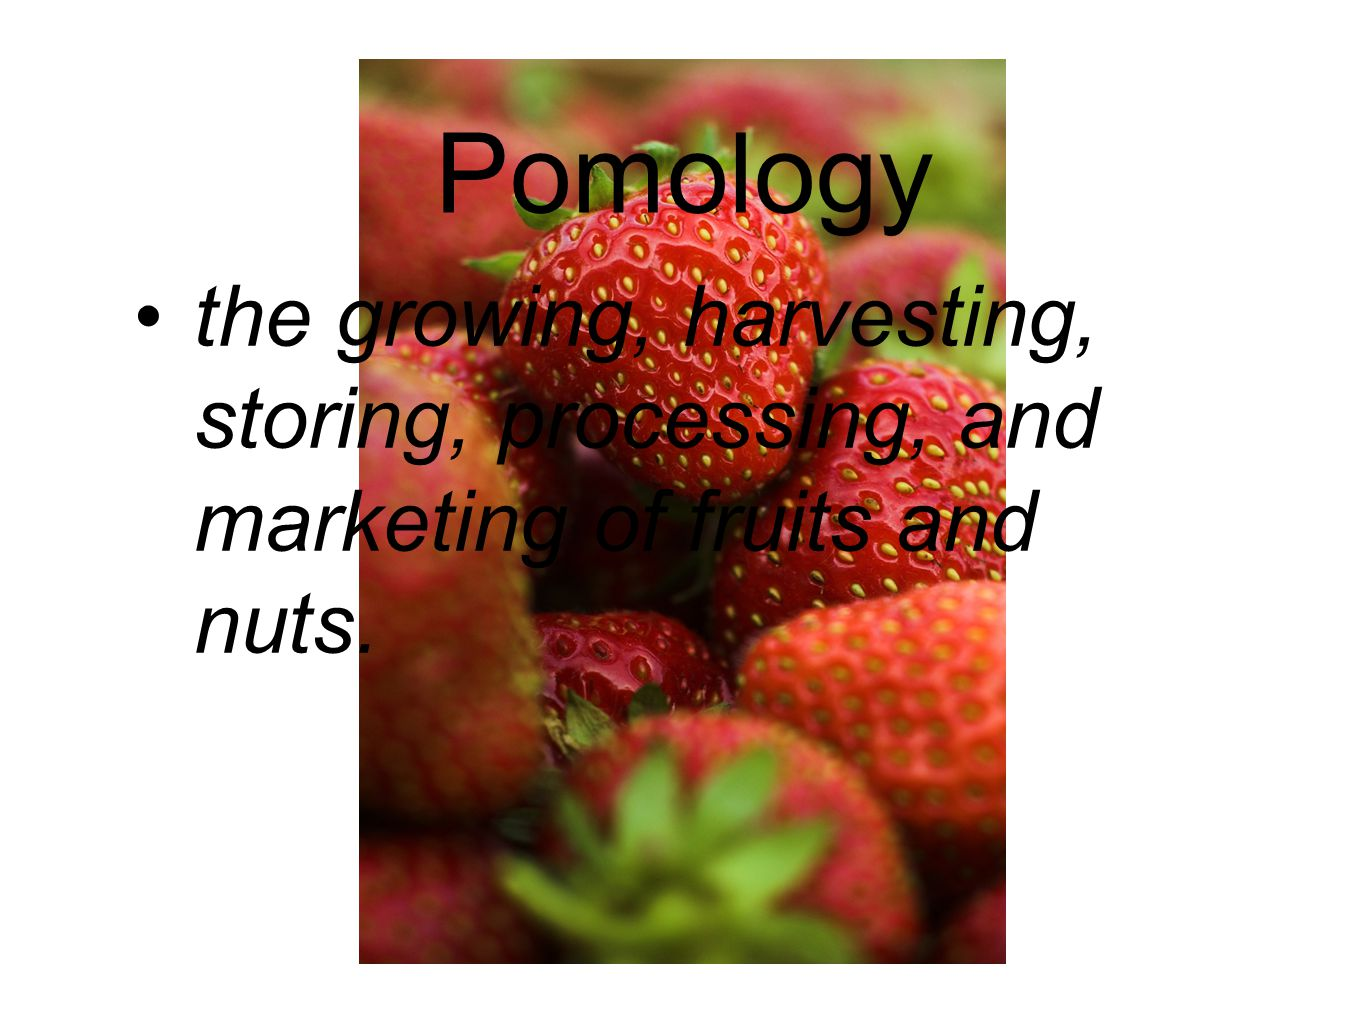 Pomology the growing, harvesting, storing, processing, and marketing of fruits and nuts.